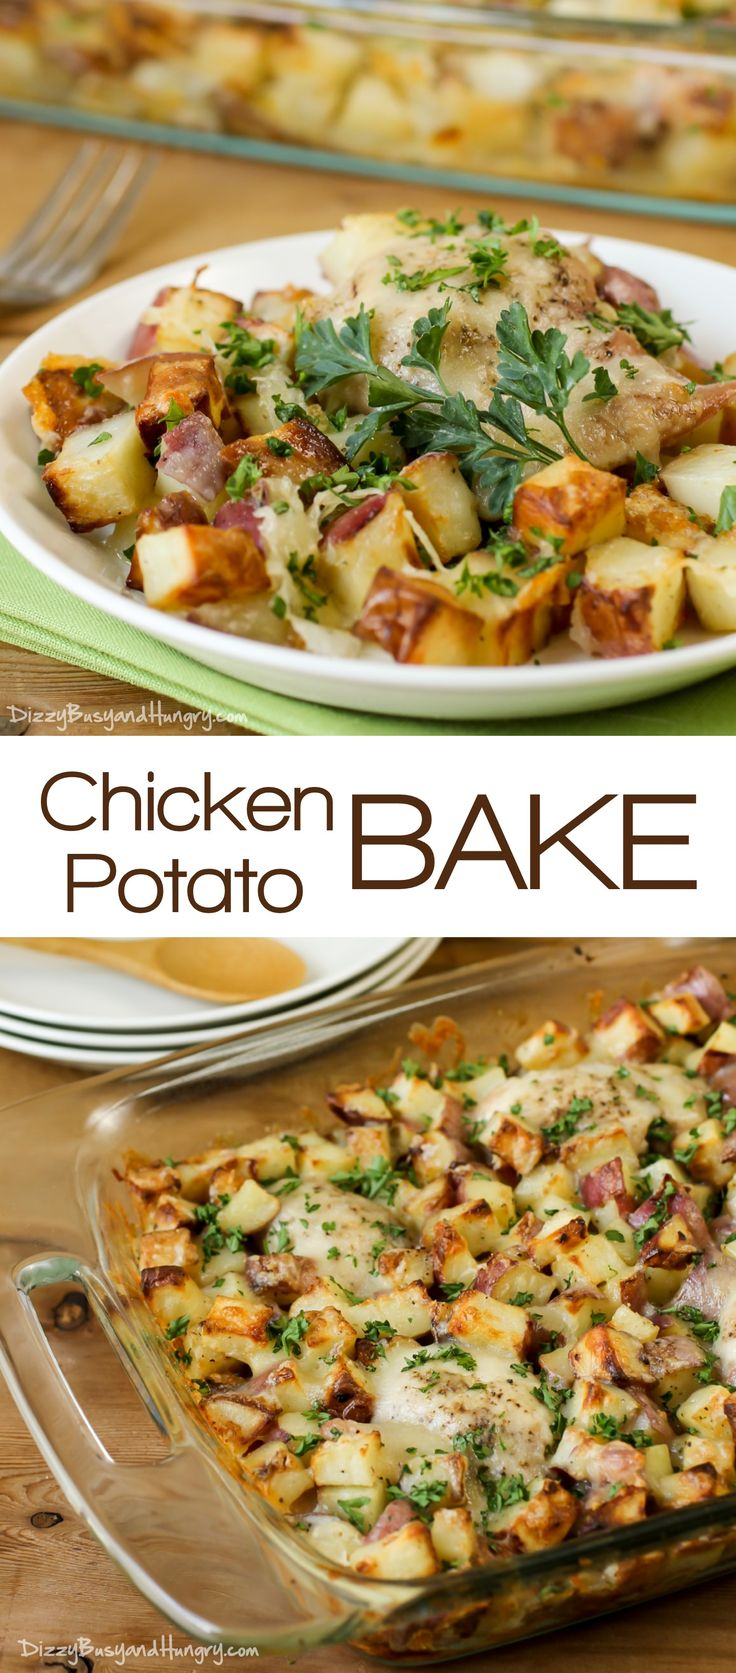 Chicken Potato Bake | DizzyBusyandHungry.com - Potatoes tossed in garlic and olive oil and baked to a golden brown with tender, juicy chicken thighs. A family favorite!: